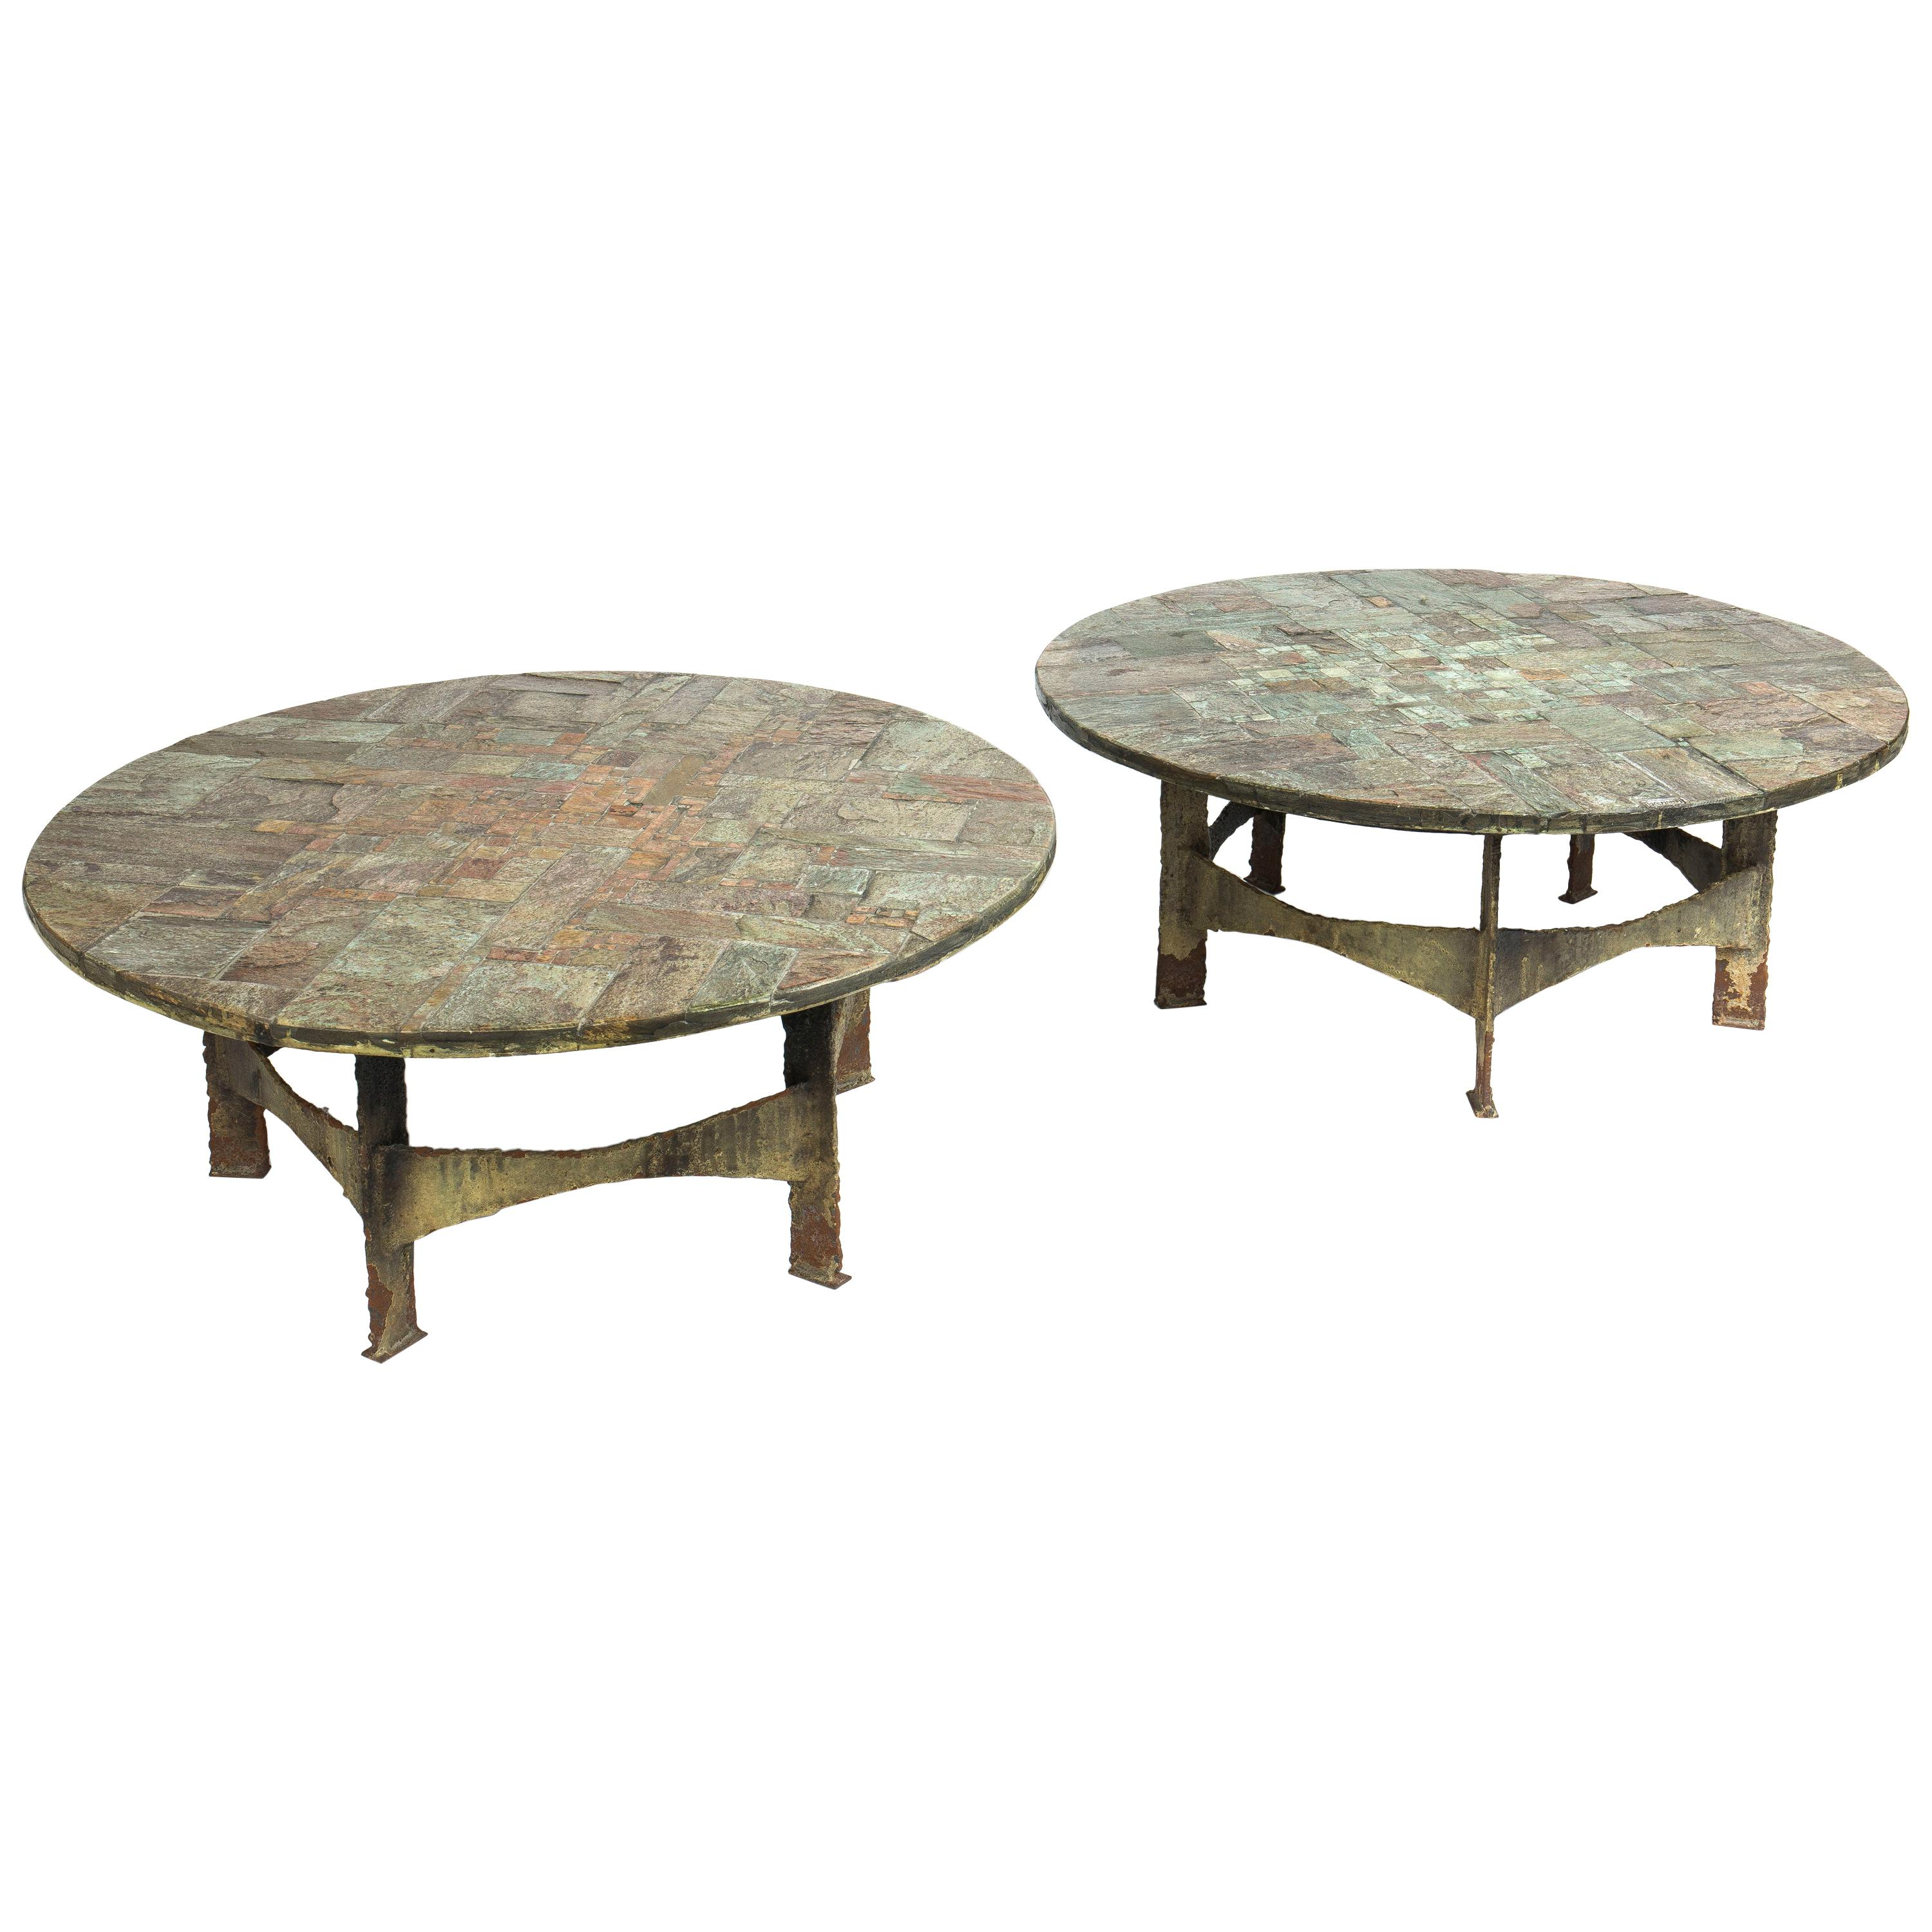 Pair of Coffee Tables by Pia Manu